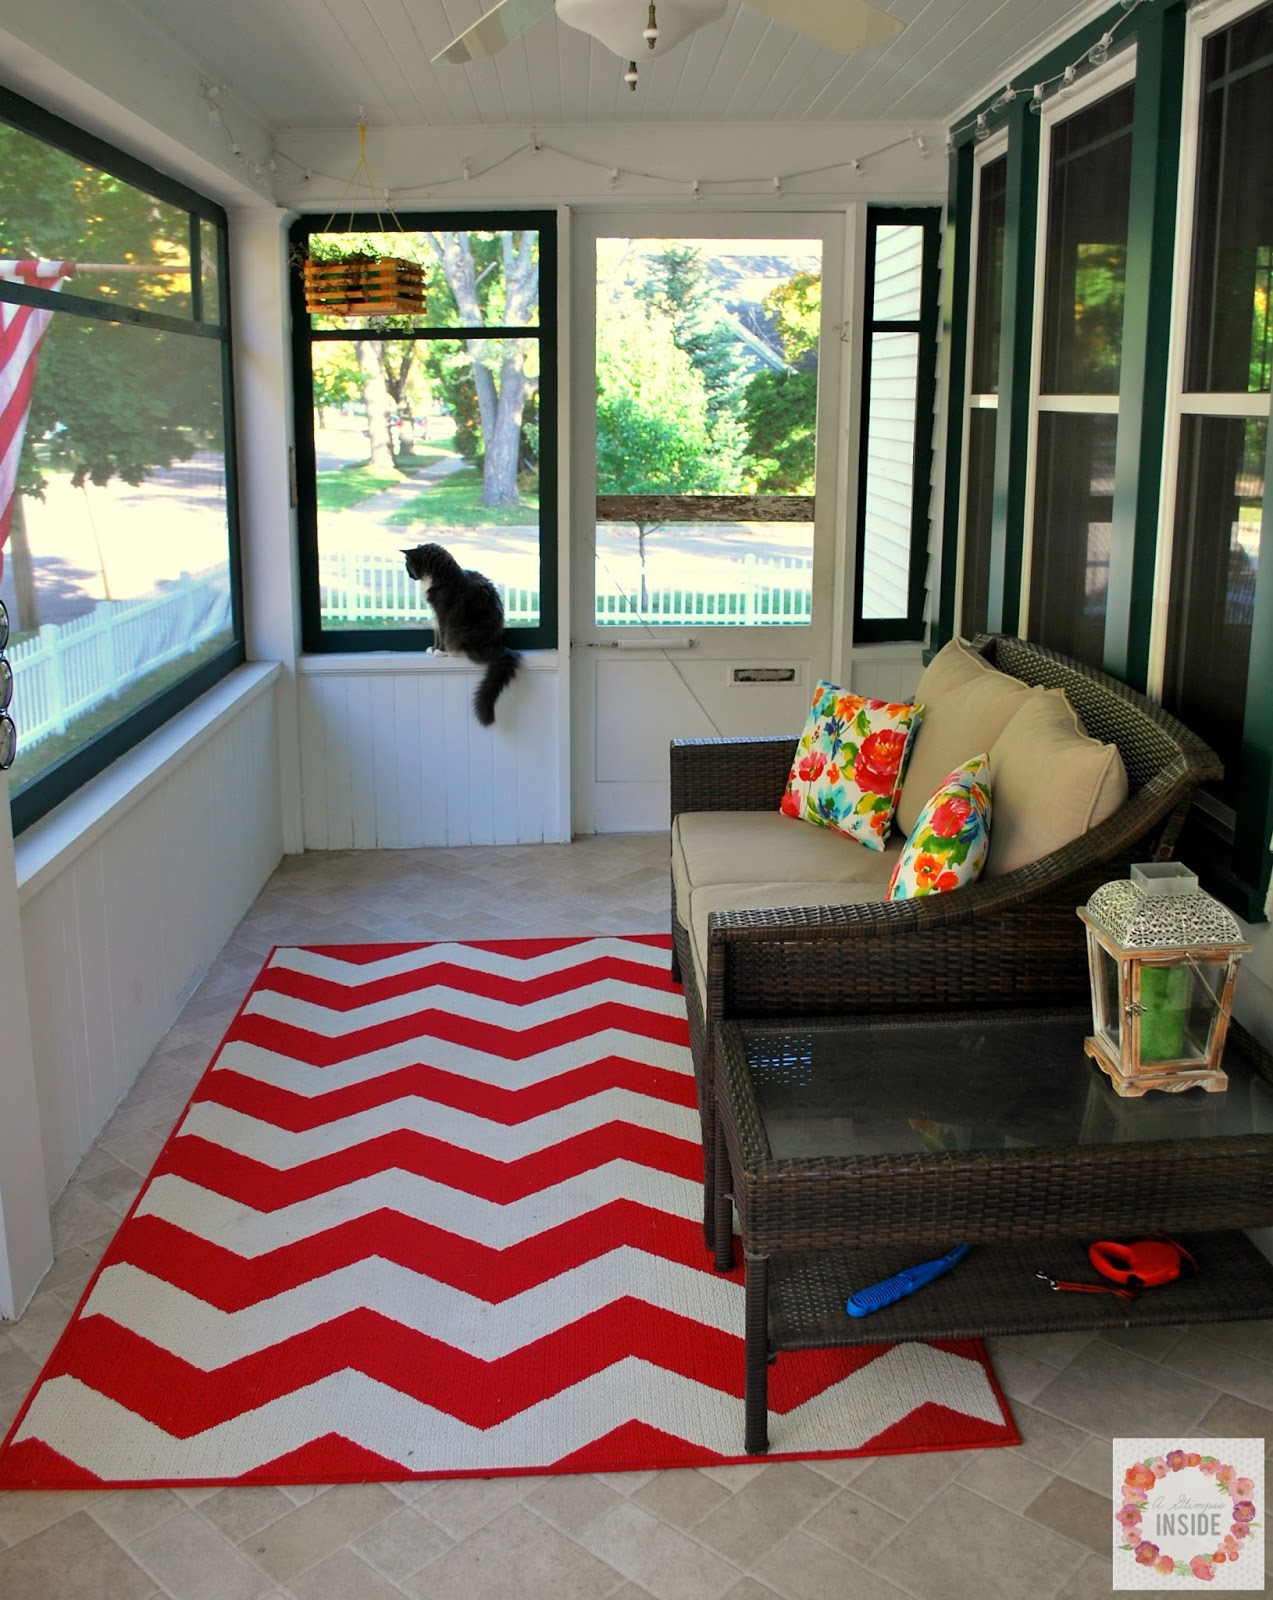 A Glimpse Inside House Tour Front Porch